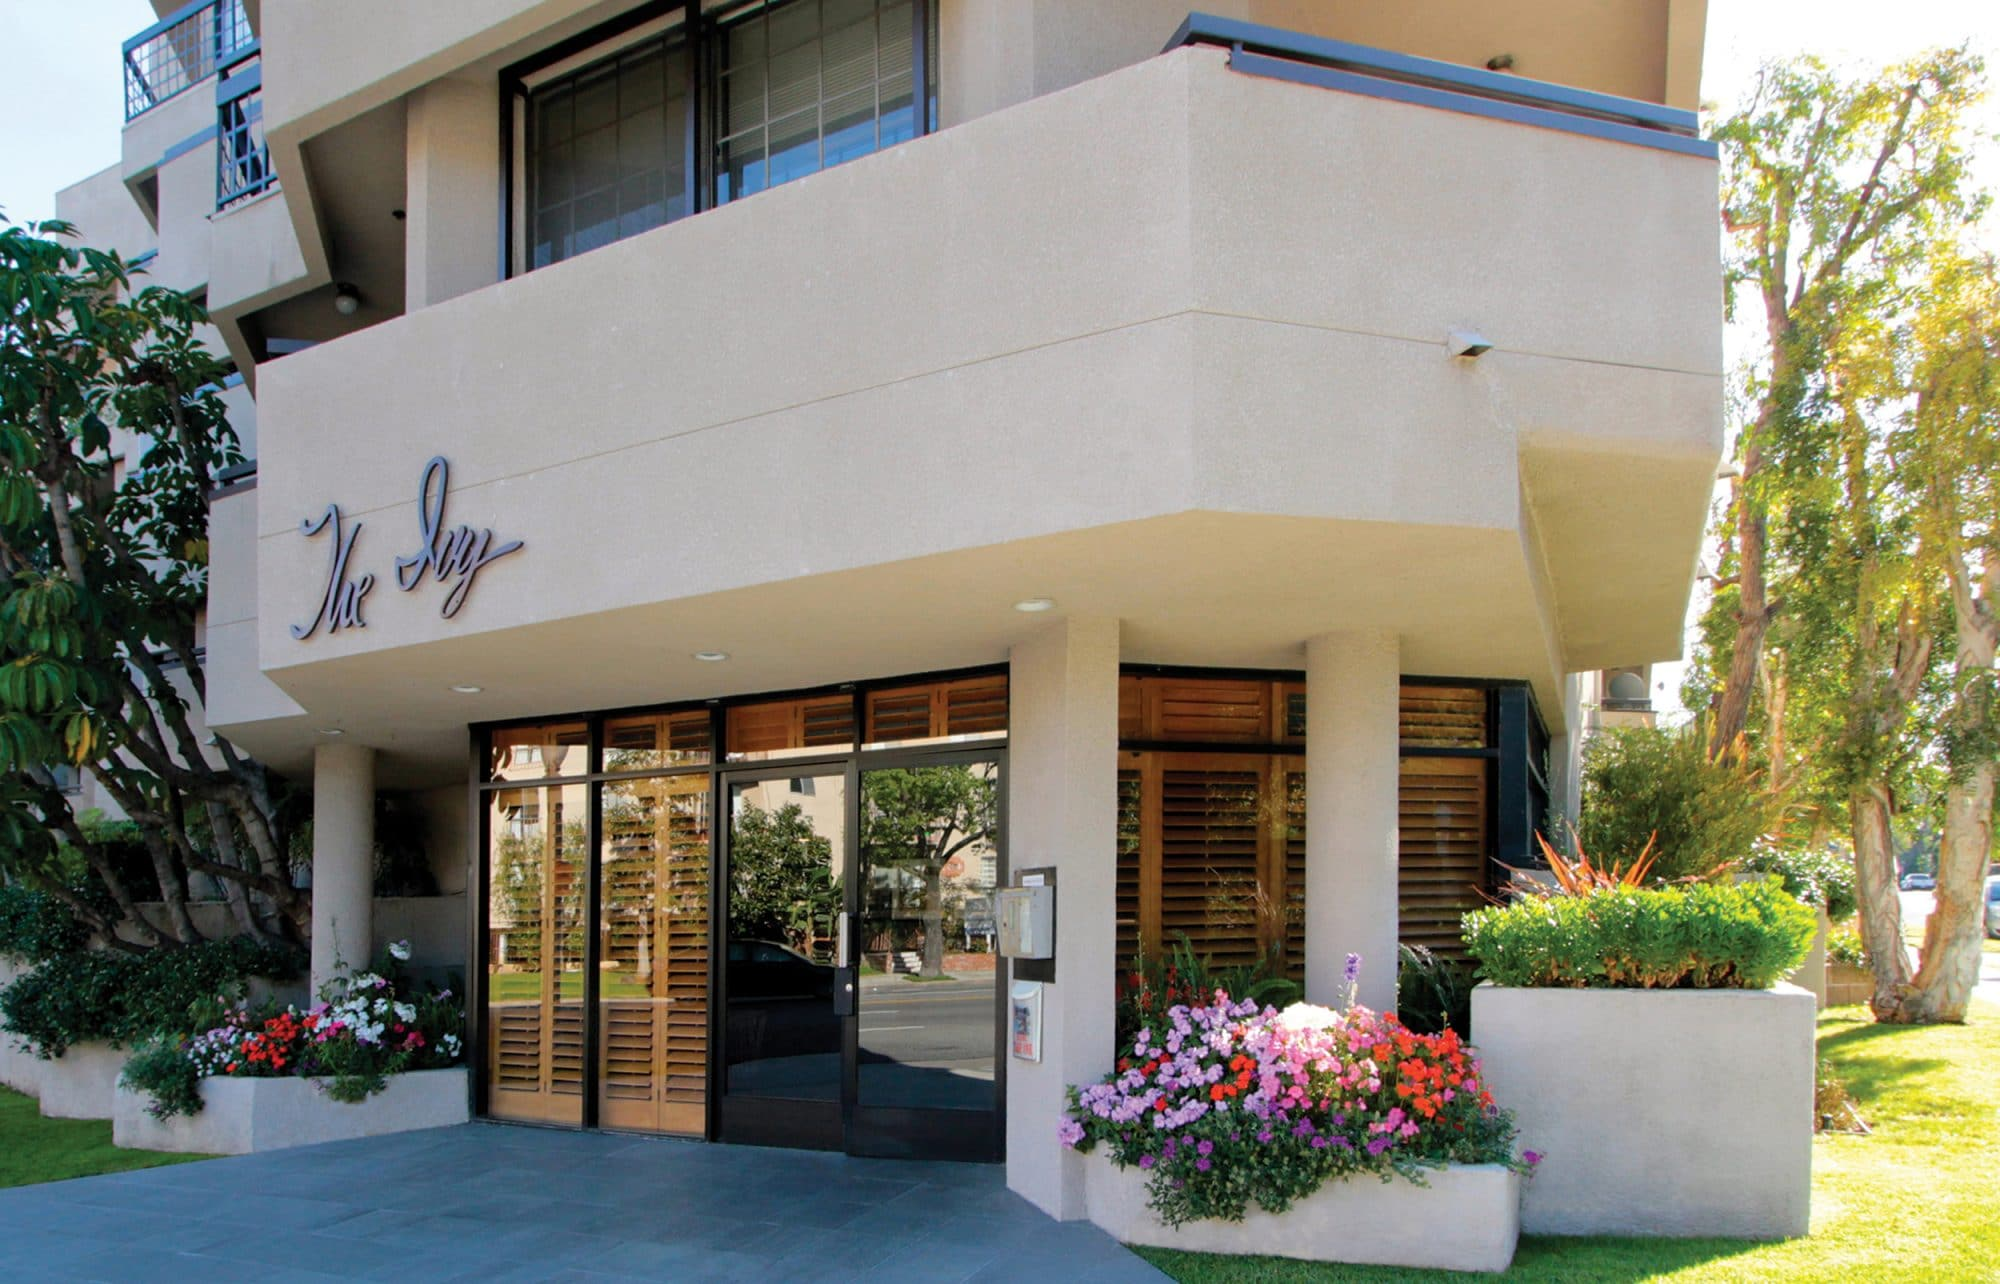 Apartment Rentals in California The Ivy